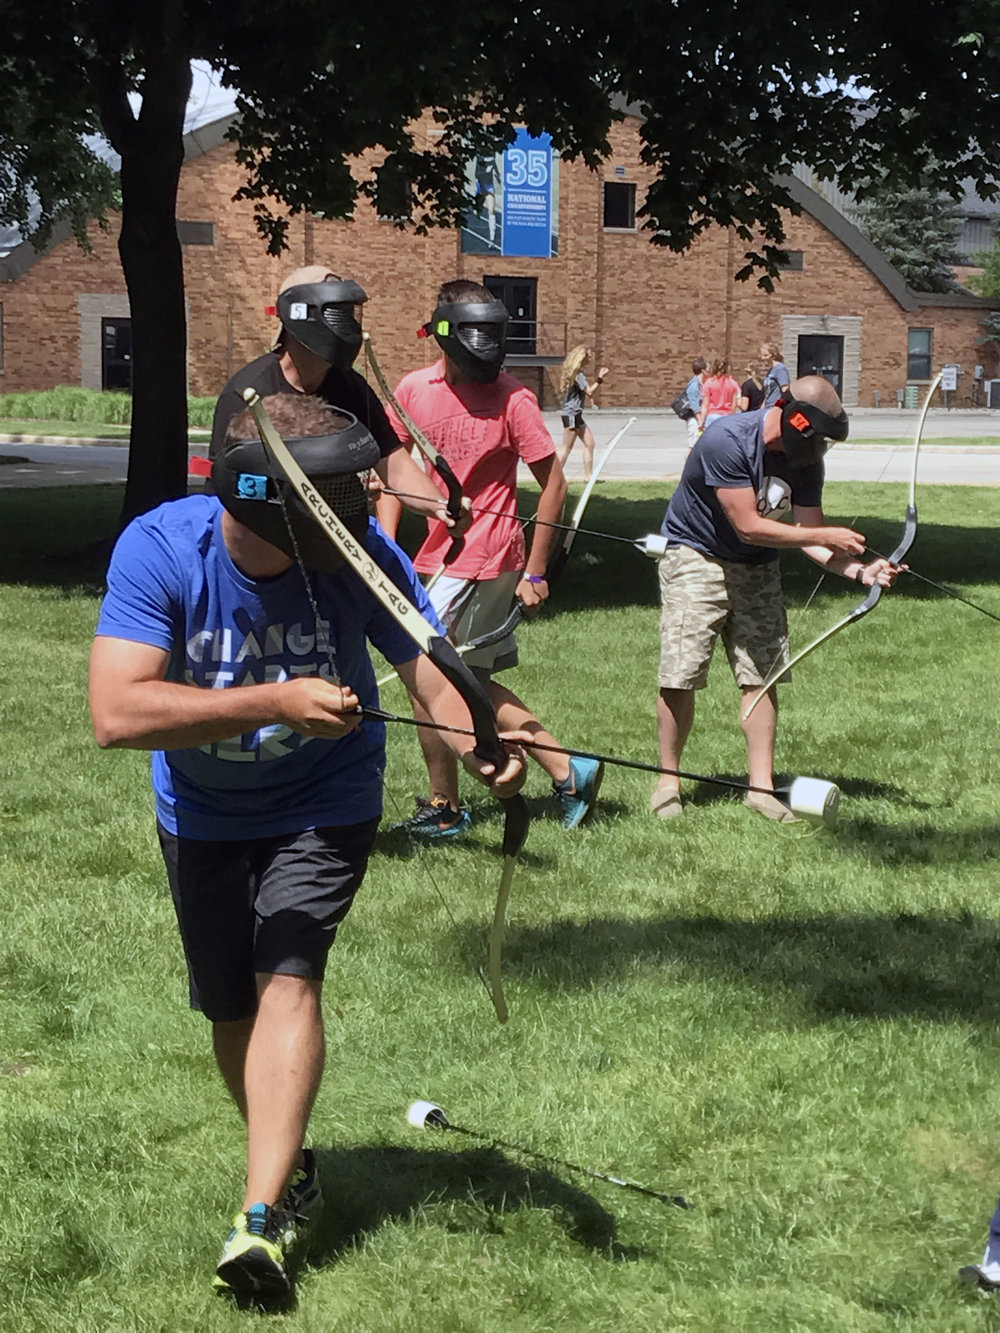 Archery_Tag_Outdoor_Inflatable_101.jpg